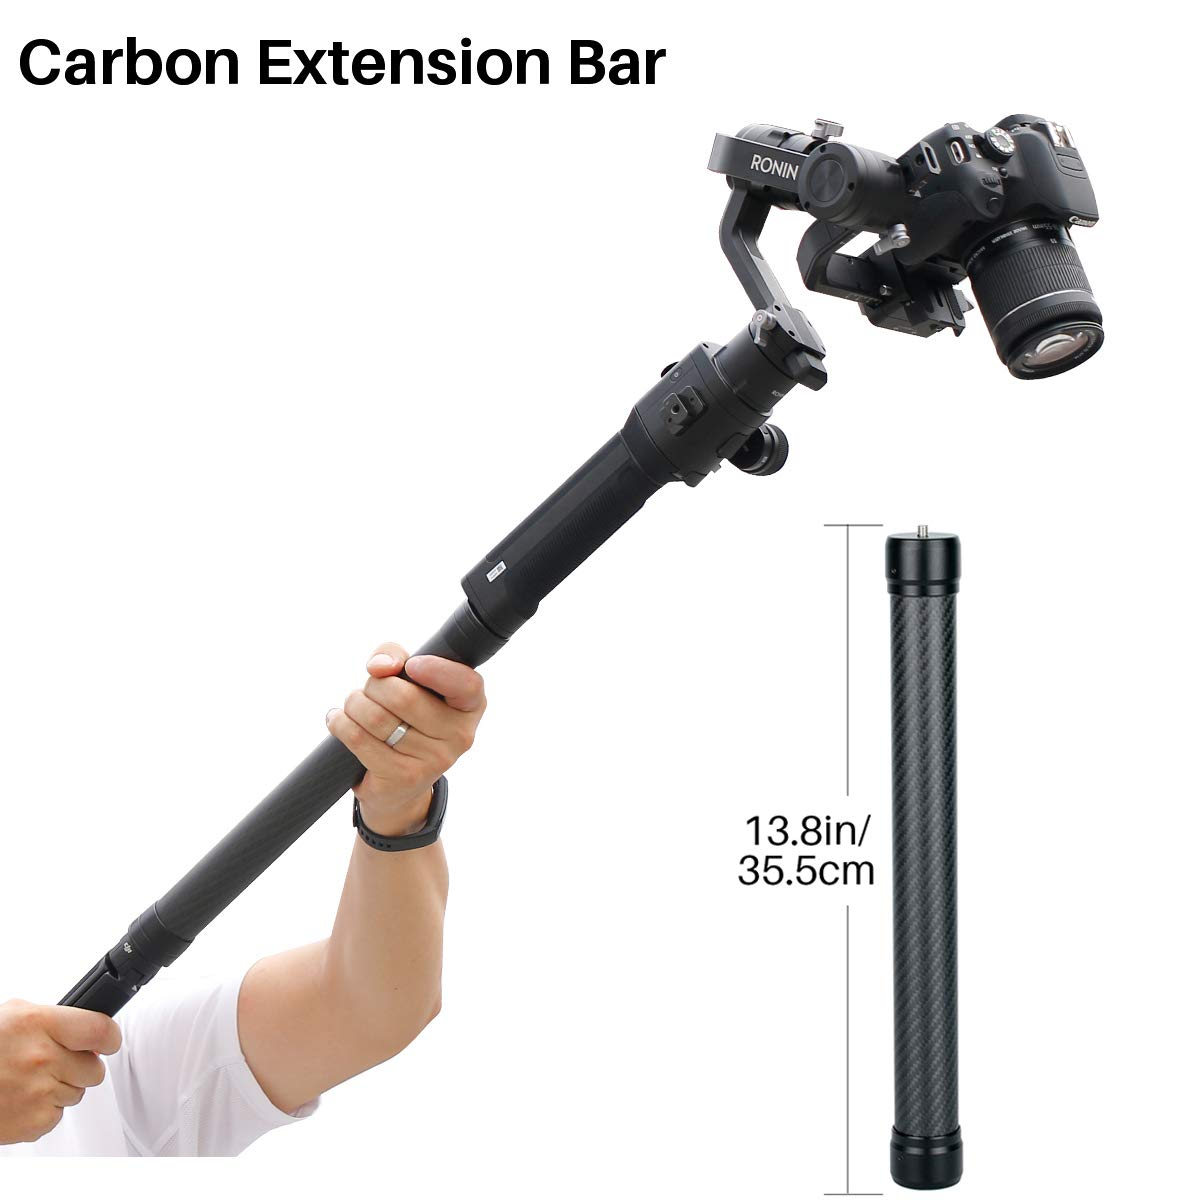 13.8inch Universal Carbon Fiber Monopod Extension Rod Pole Stick 1/4'' Tripod Thread Compatible for DJI Ronin S Moza Air 2 FeiyuTech Zhiyun Crane 2 Smooth 4 Gimbal Stabilizer Accessories